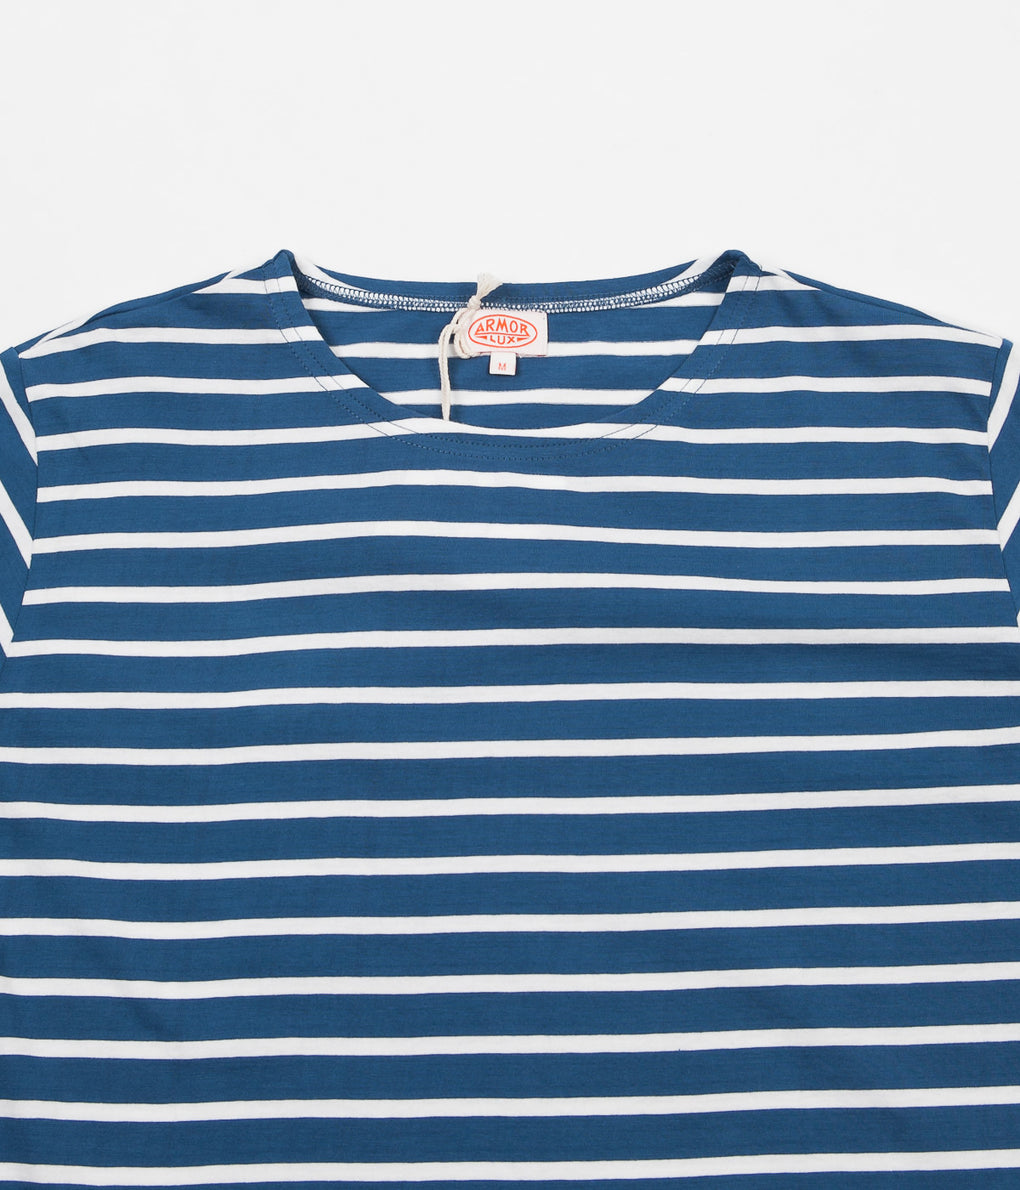 Armor Lux Striped Breton T-Shirt - Dark Blue Twilight / Milk